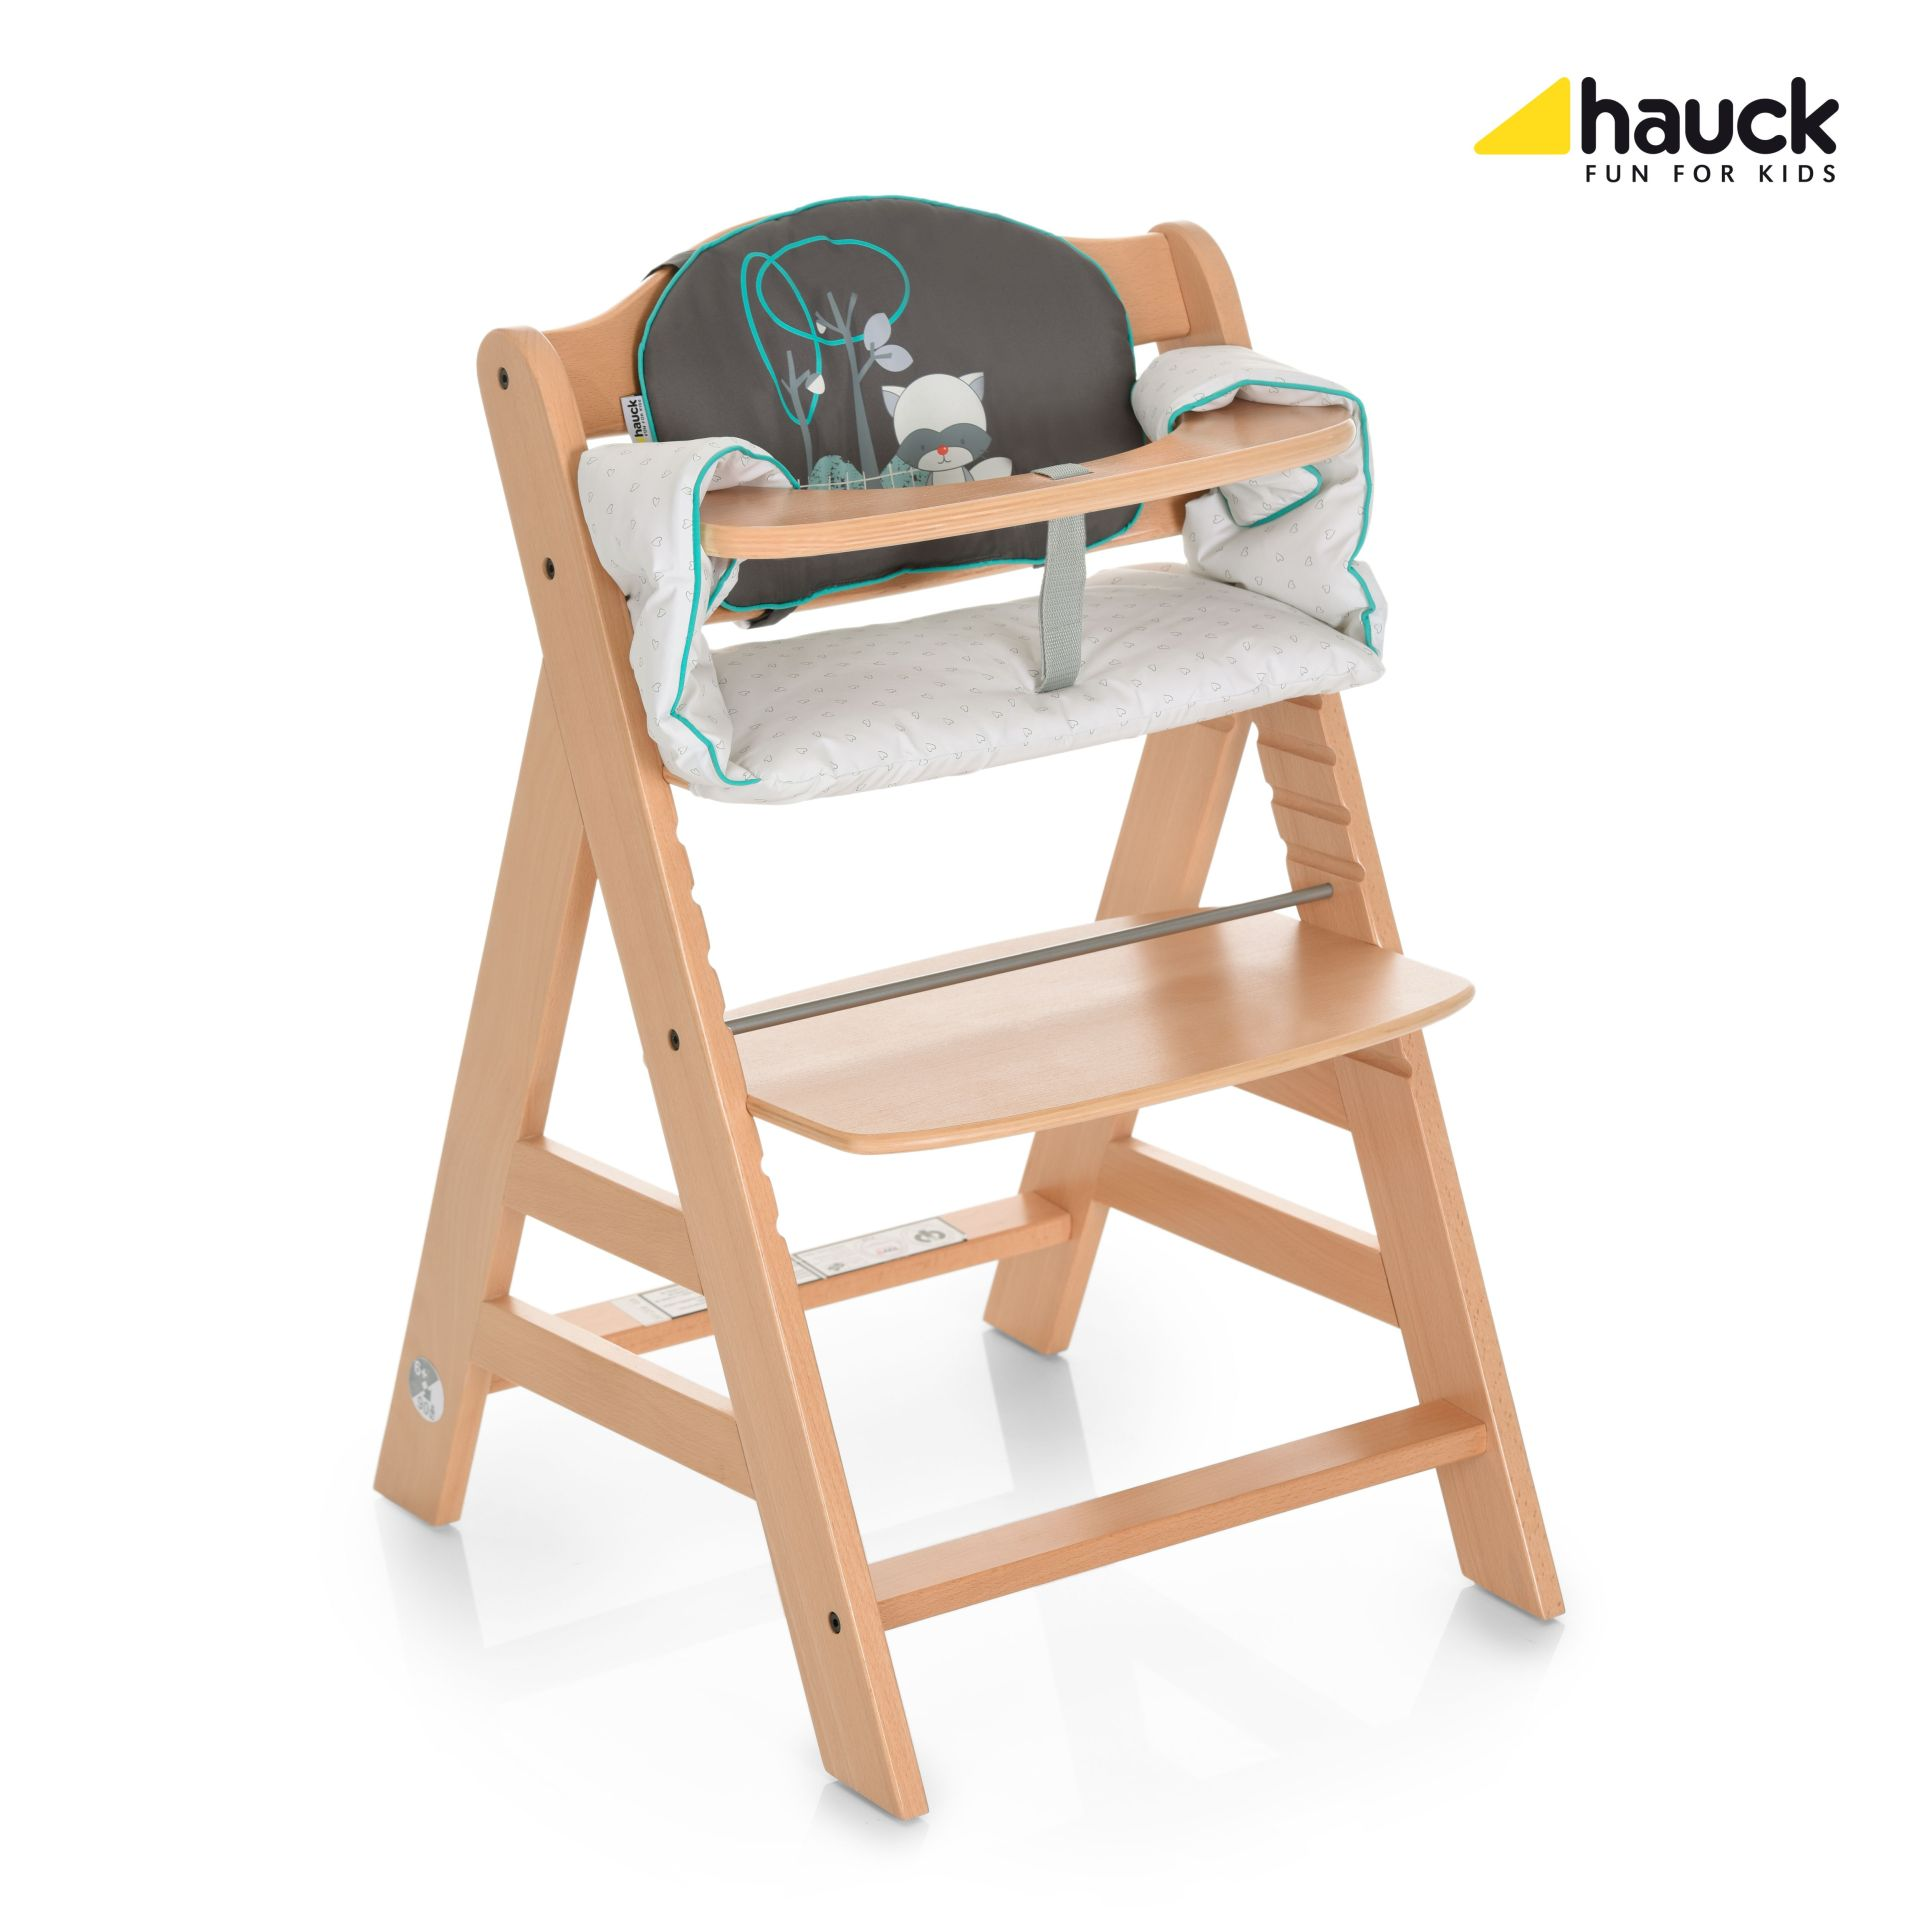 Hauck High Chair Seat Pad Comfort 2018 Forest Fun Buy At